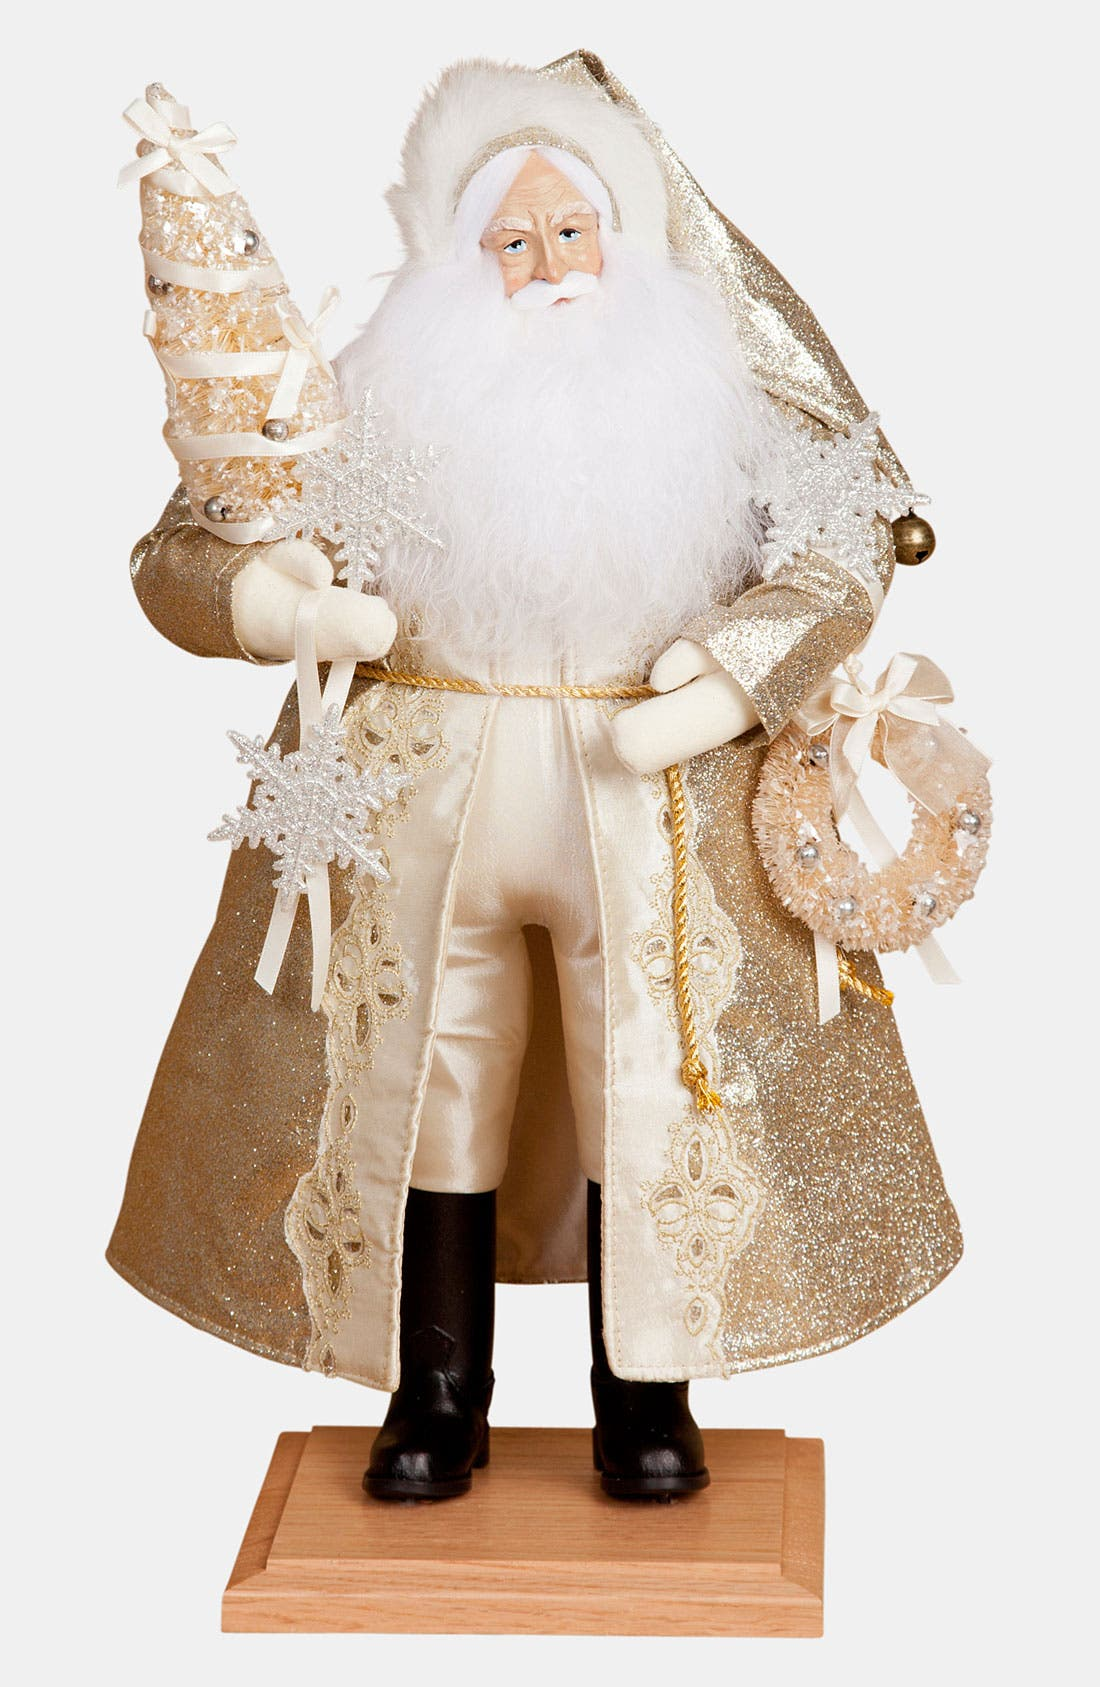 Alternate Image 1 Selected - Lynn Haney 'Golden Glimmer' Santa Figurine